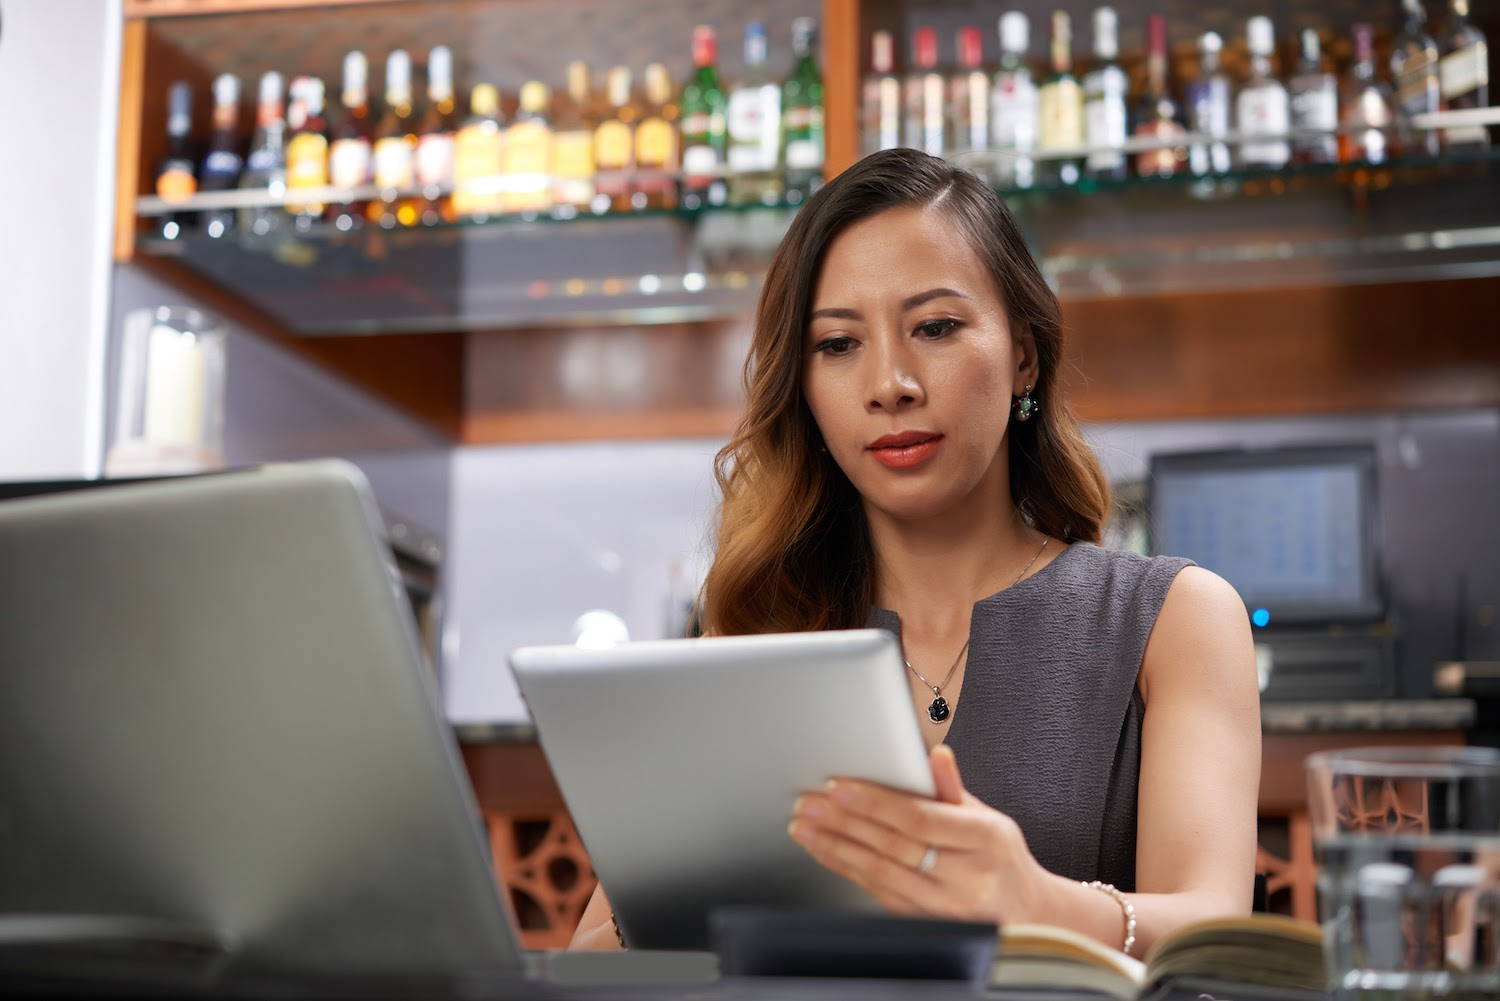 Bartender looks at iPad with laptop open in front of her